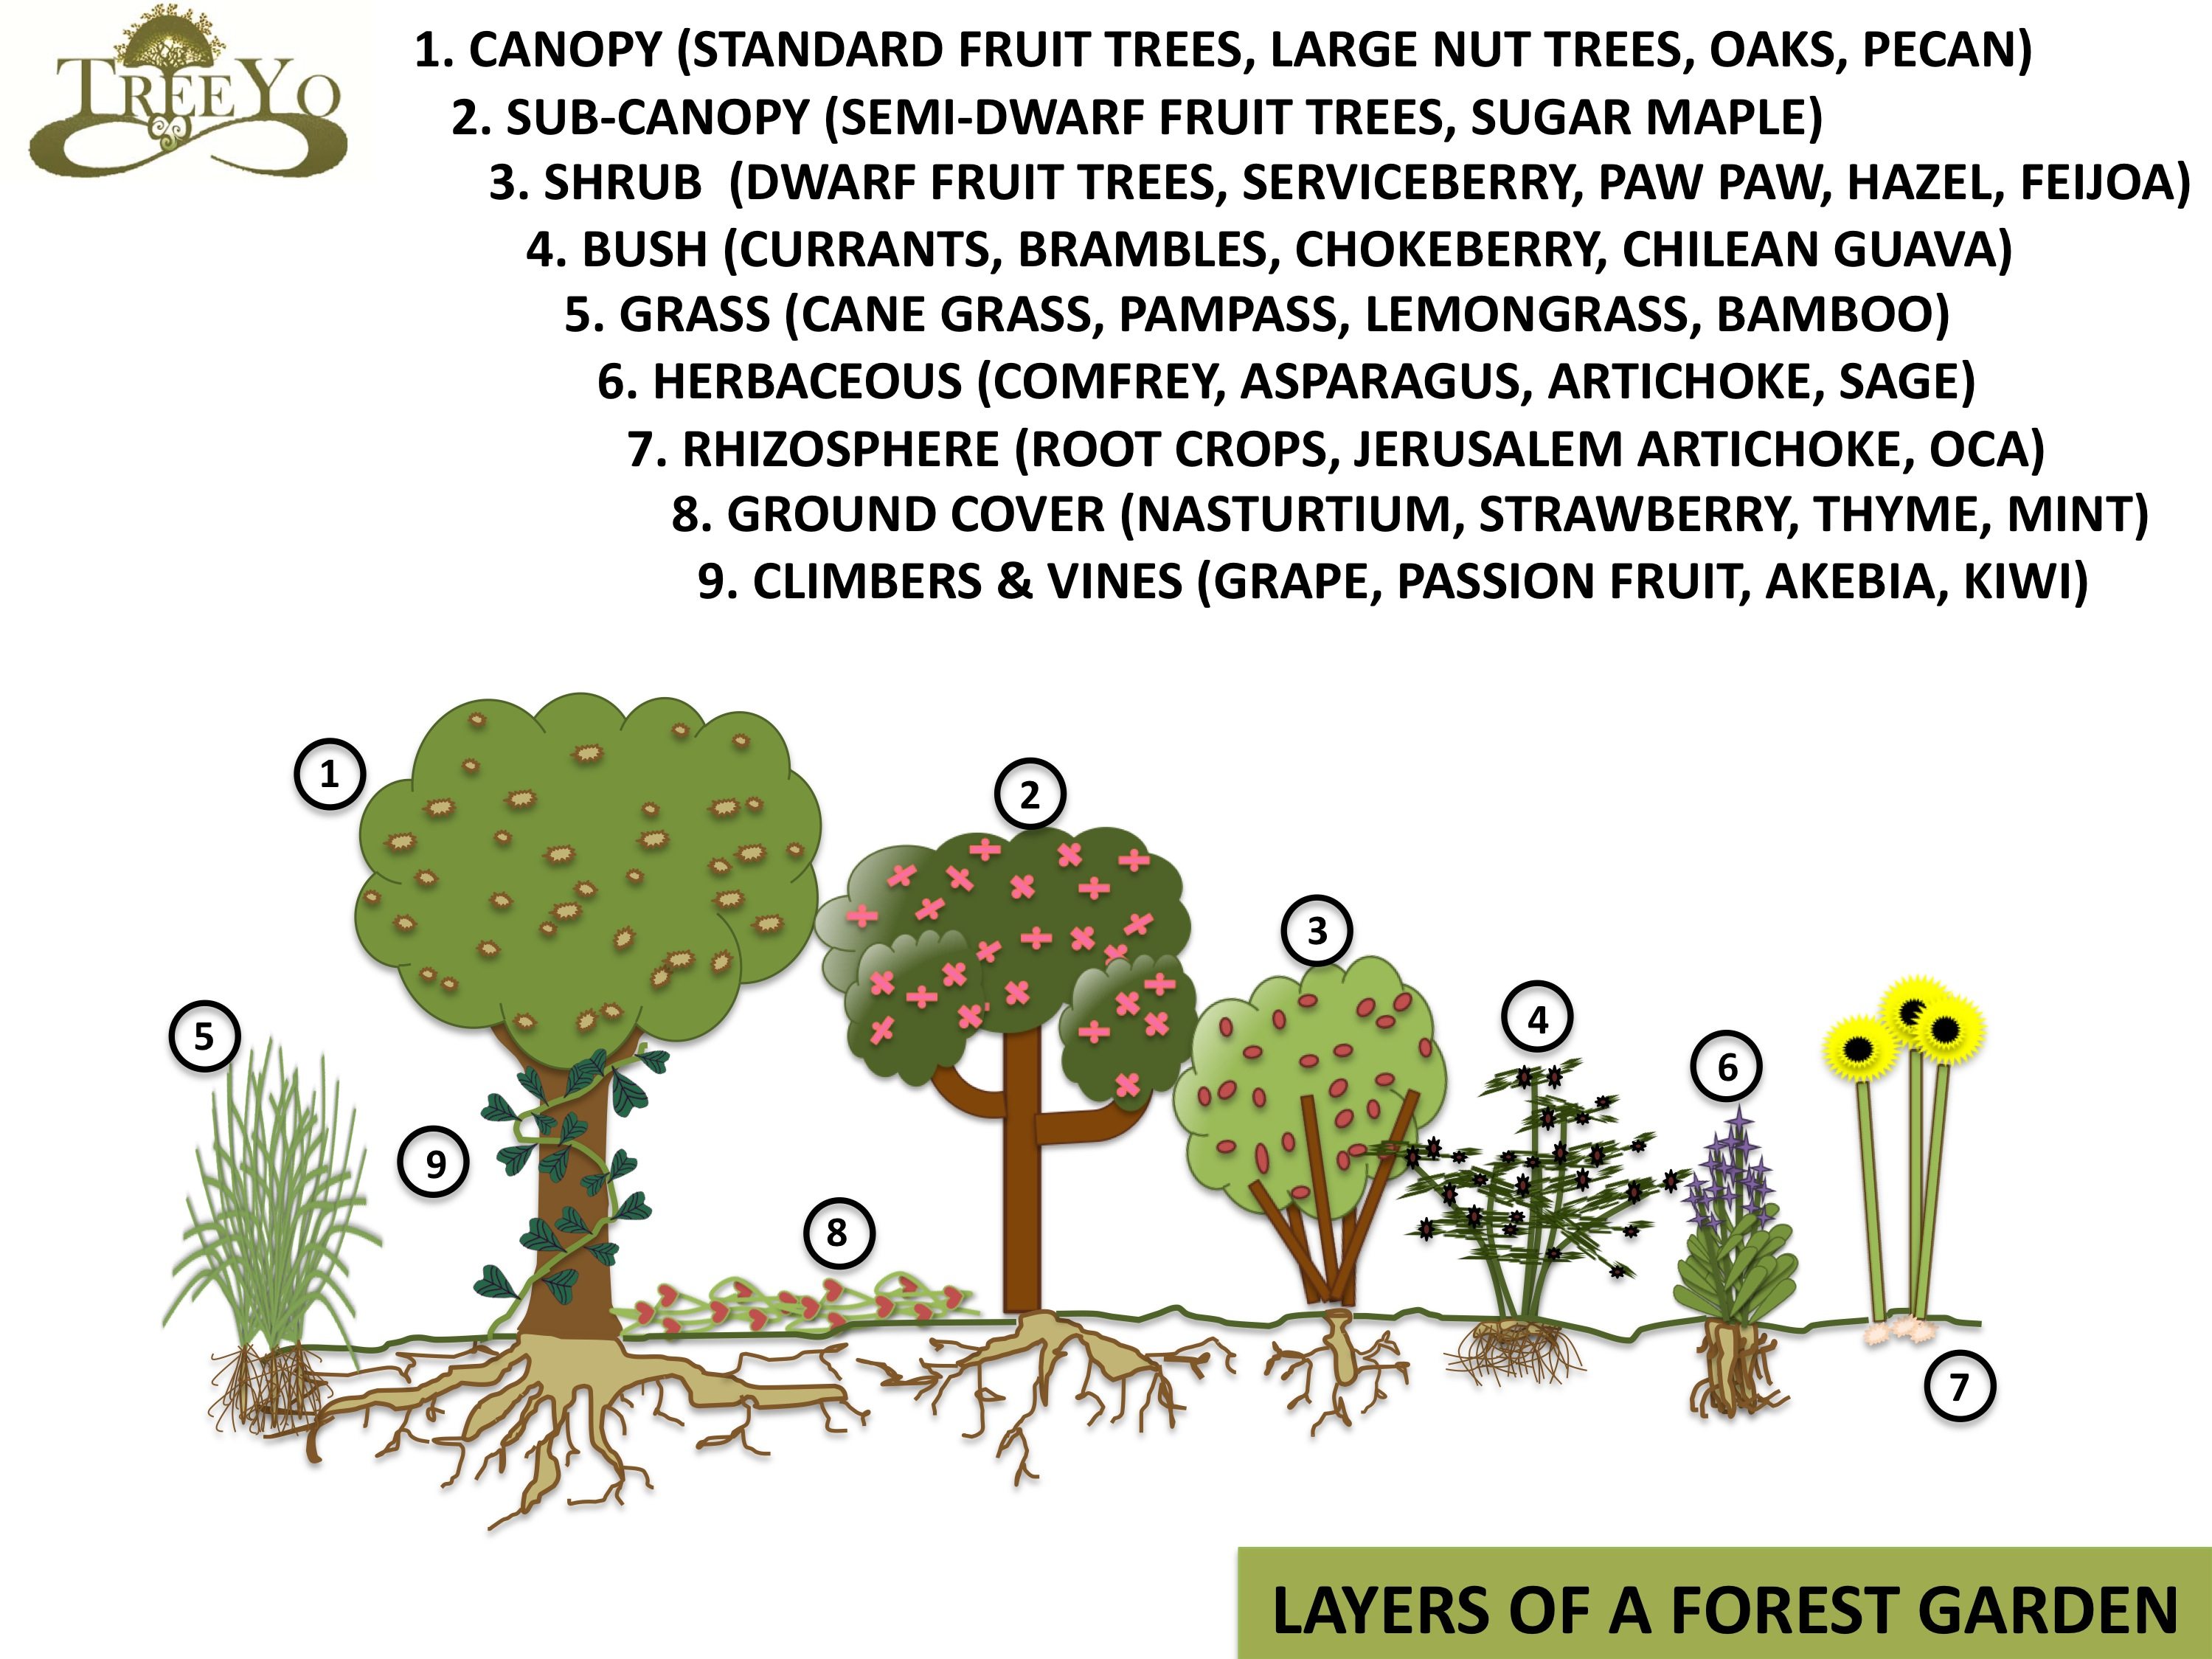 Food Forest Course With Treeyo In Sintra February